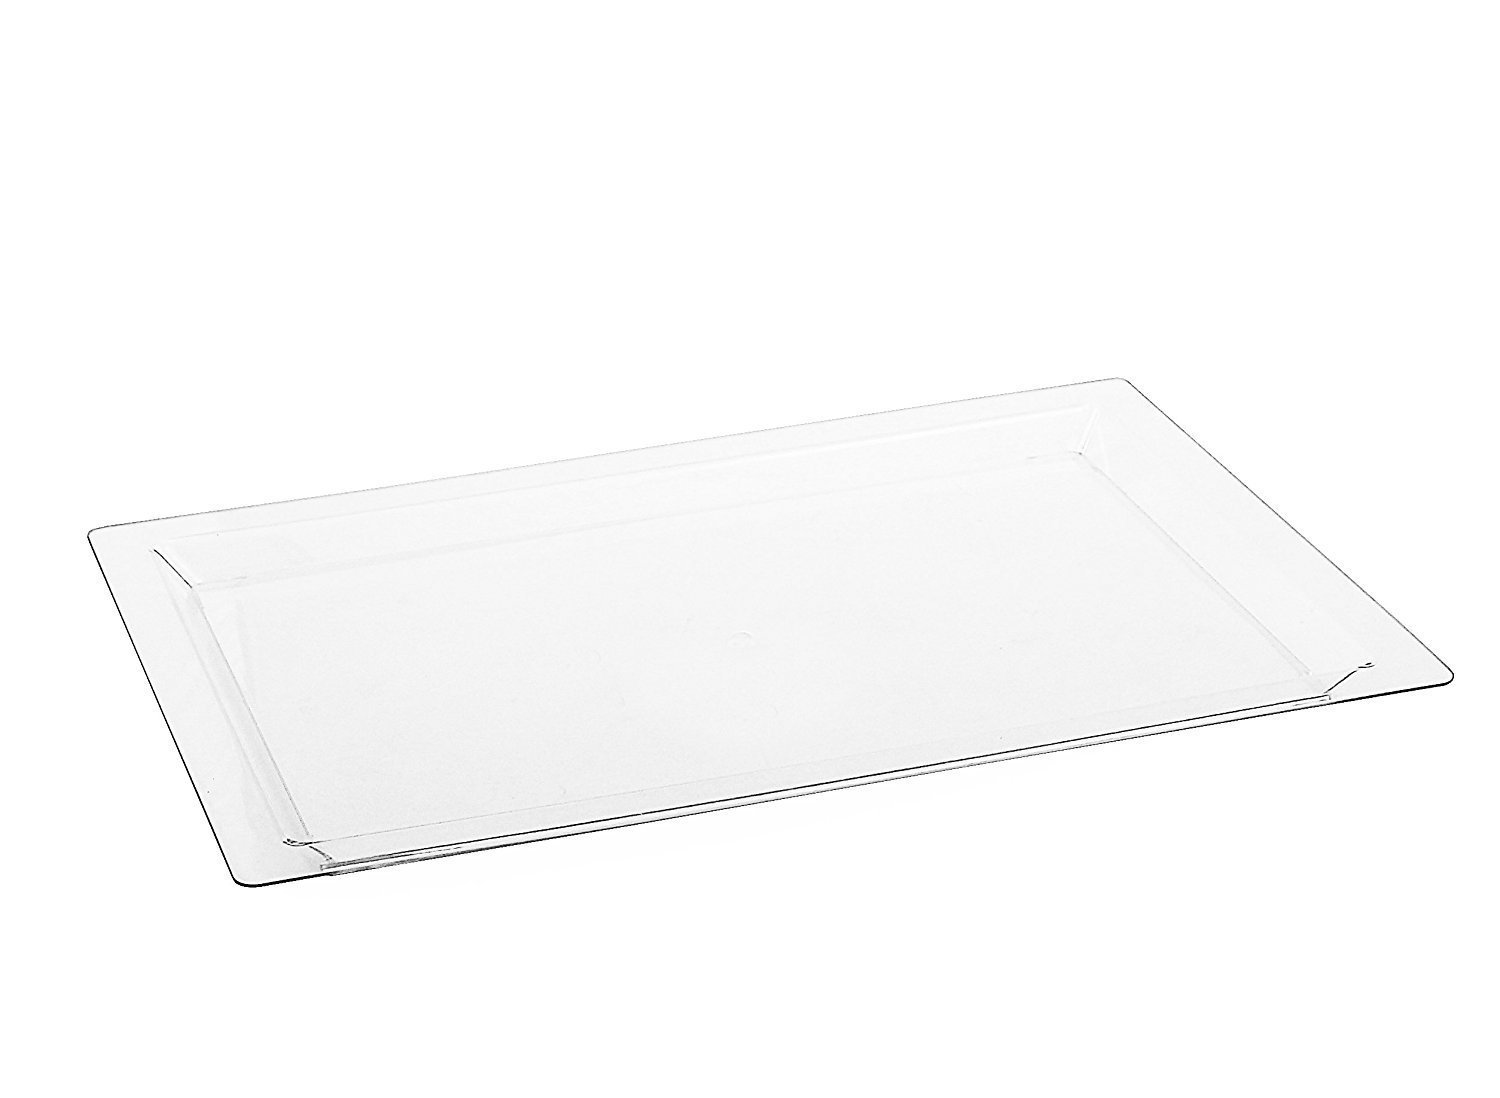 Clear Plastic Serving Tray, Rectangular 18'' x 12'' Pack Of 4 by Party Bargains (Image #1)